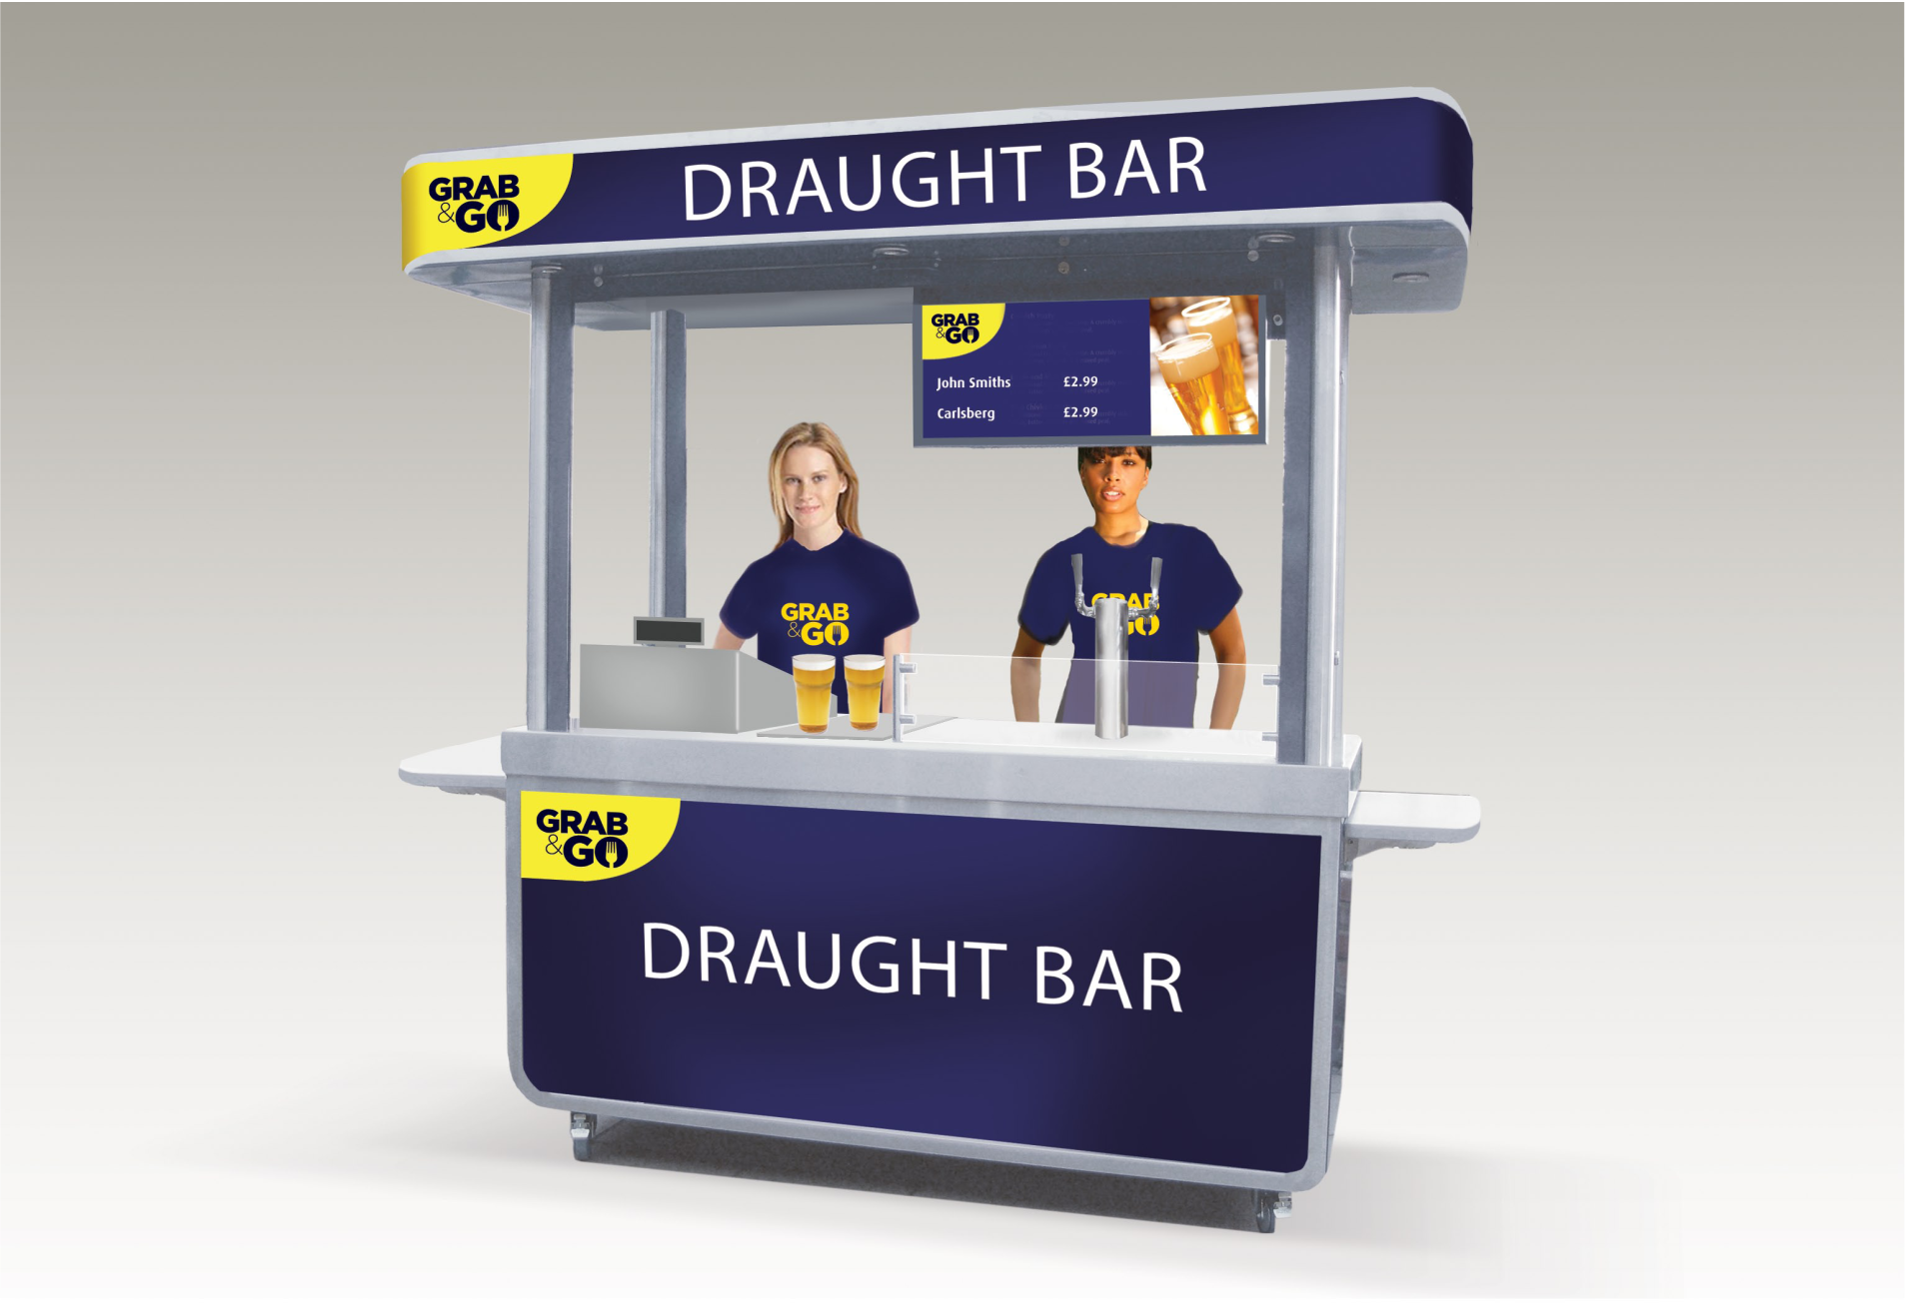 <p>Bespoke Products – Mobile Carts – Mobile Bars – Custom Design – Draught Beer</p> <p></p> <p>Stylish, eloquent & bespoke made Portable Drinks Bar – branding as desired</p> <p></p> <p>Designed to meet the customer needs & objectives to include draught dispense, champagne, Pimms, multi-purpose etc or whatever the customer requires to make their mobile beverage bar unique & exclusive to their brand</p> <p></p> <p>One example of a design. We can design and manufacture to meet customer's specific objectives – foldable, static, but still mobile</p>